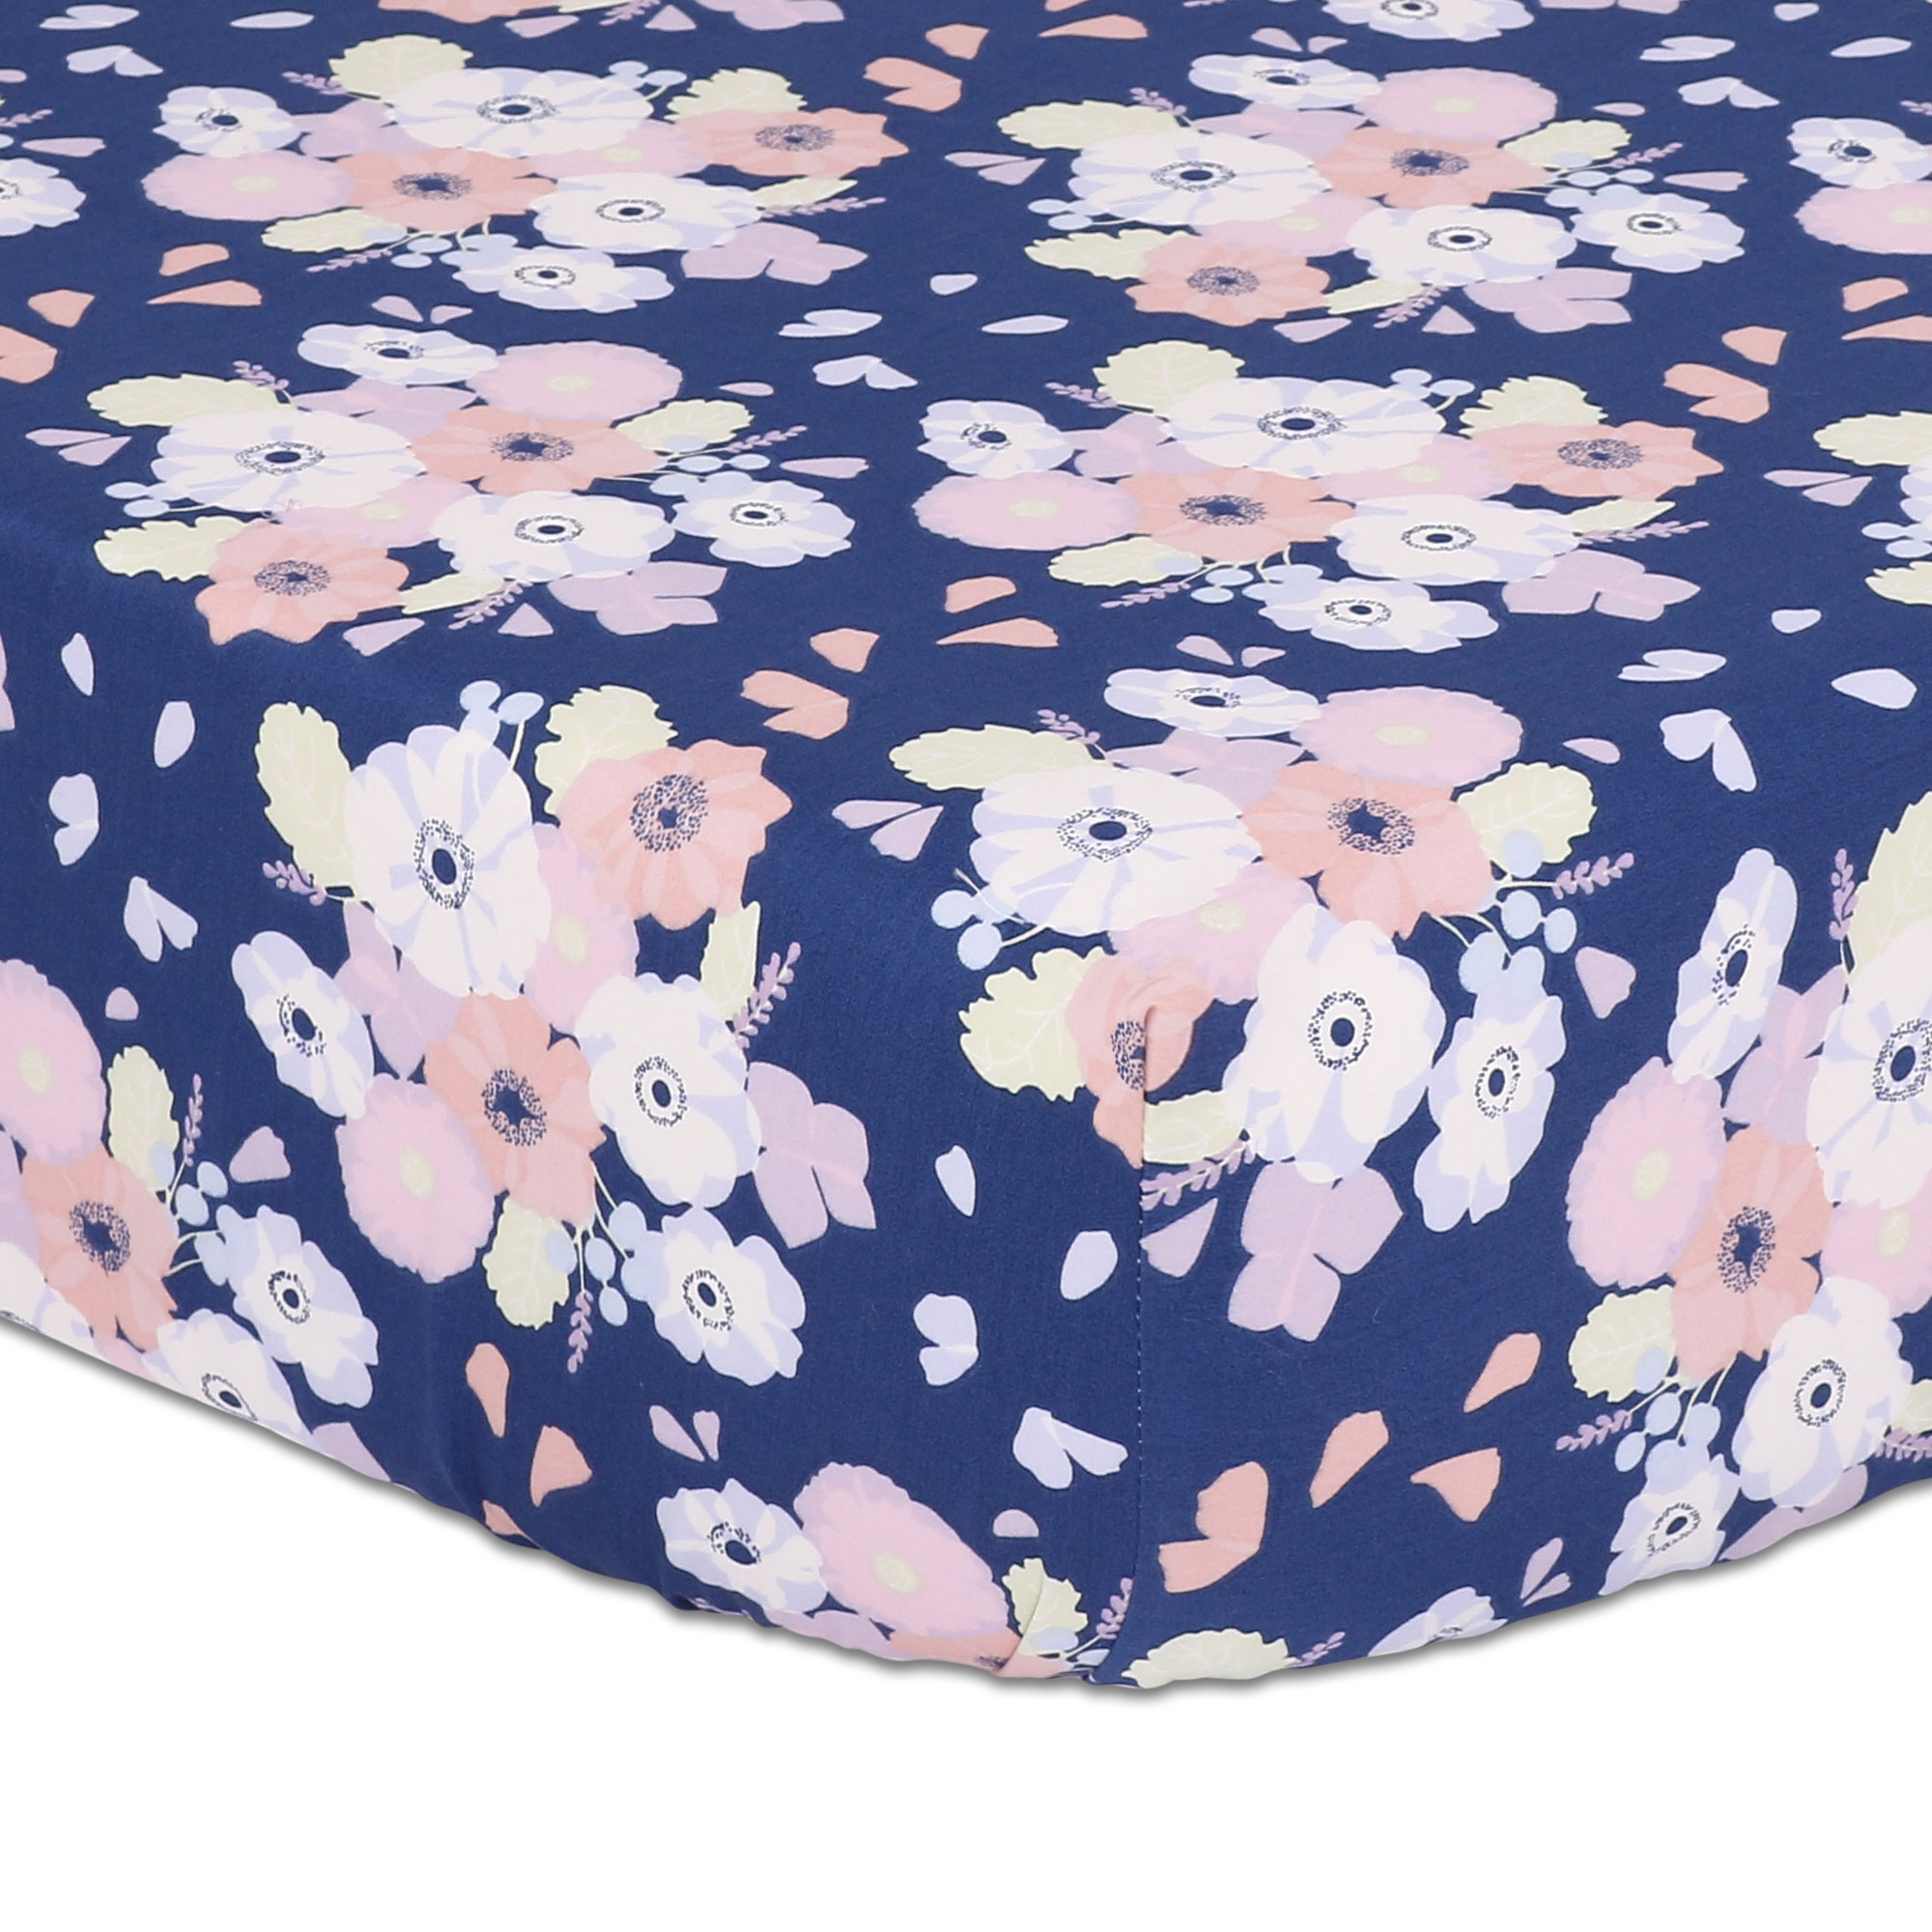 Navy Blue Floral Fitted Crib Sheet by The Peanut Shell